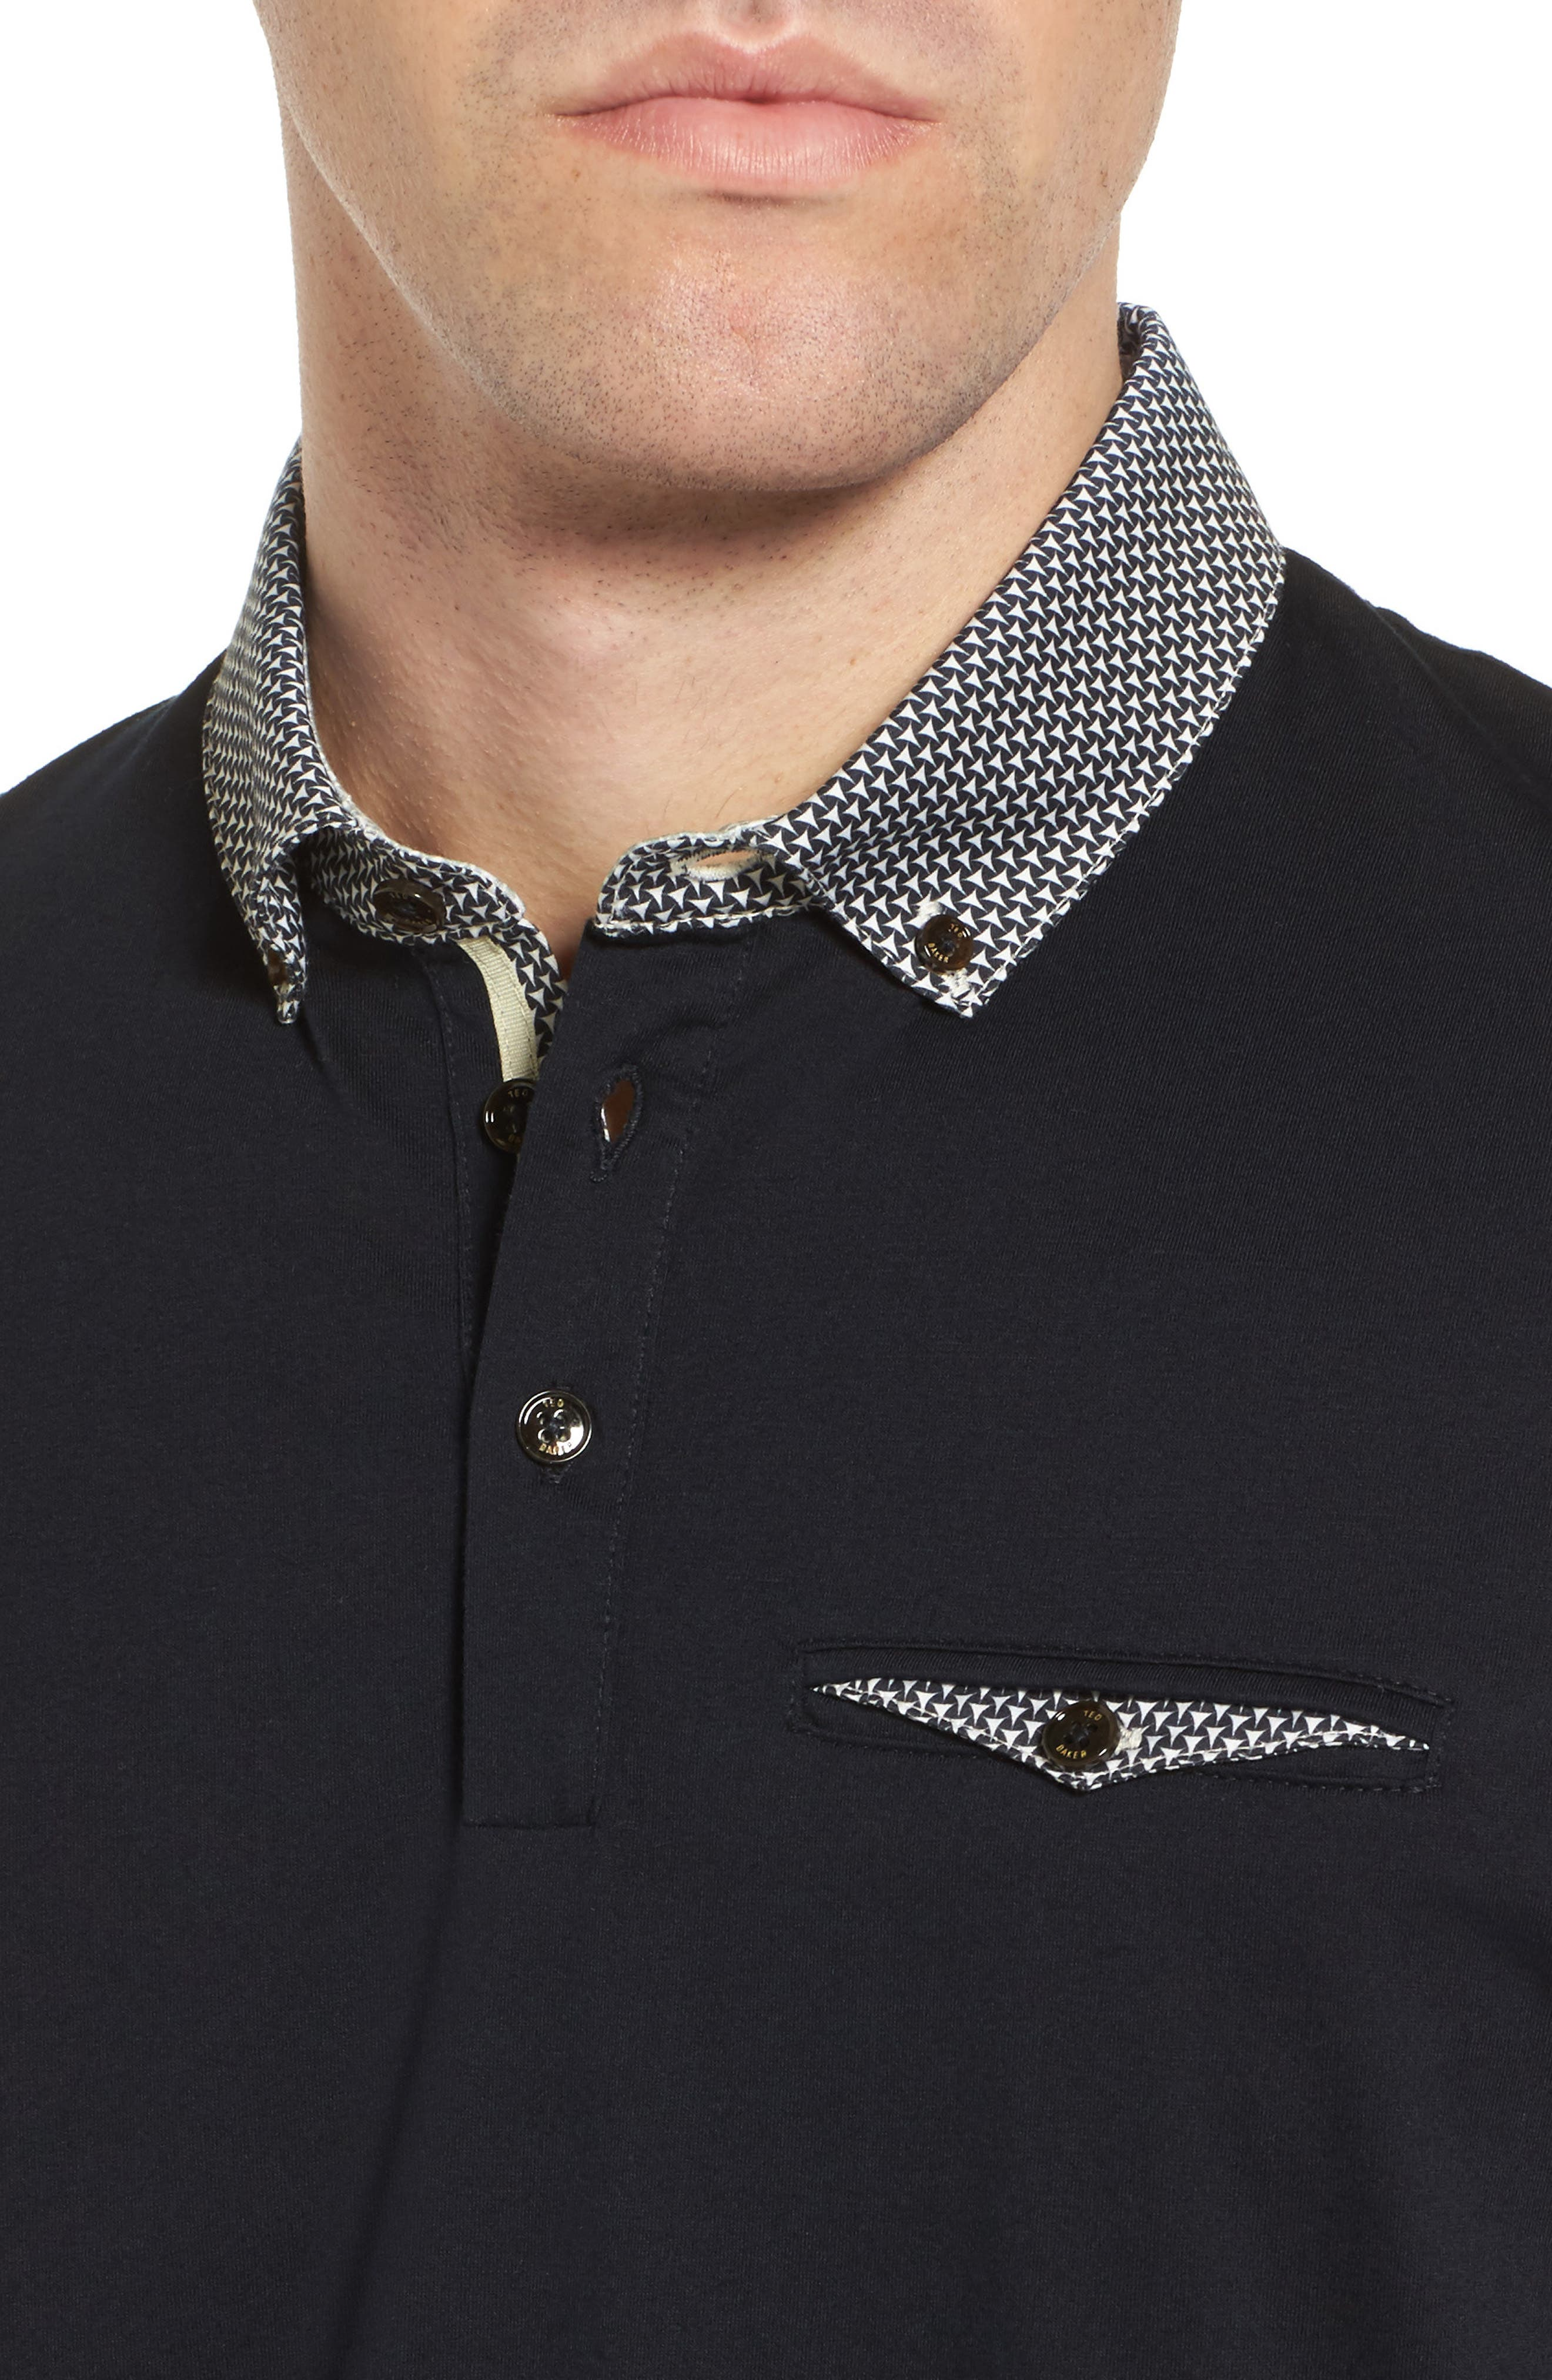 Movey Trim Fit Woven Geo Polo,                             Alternate thumbnail 15, color,